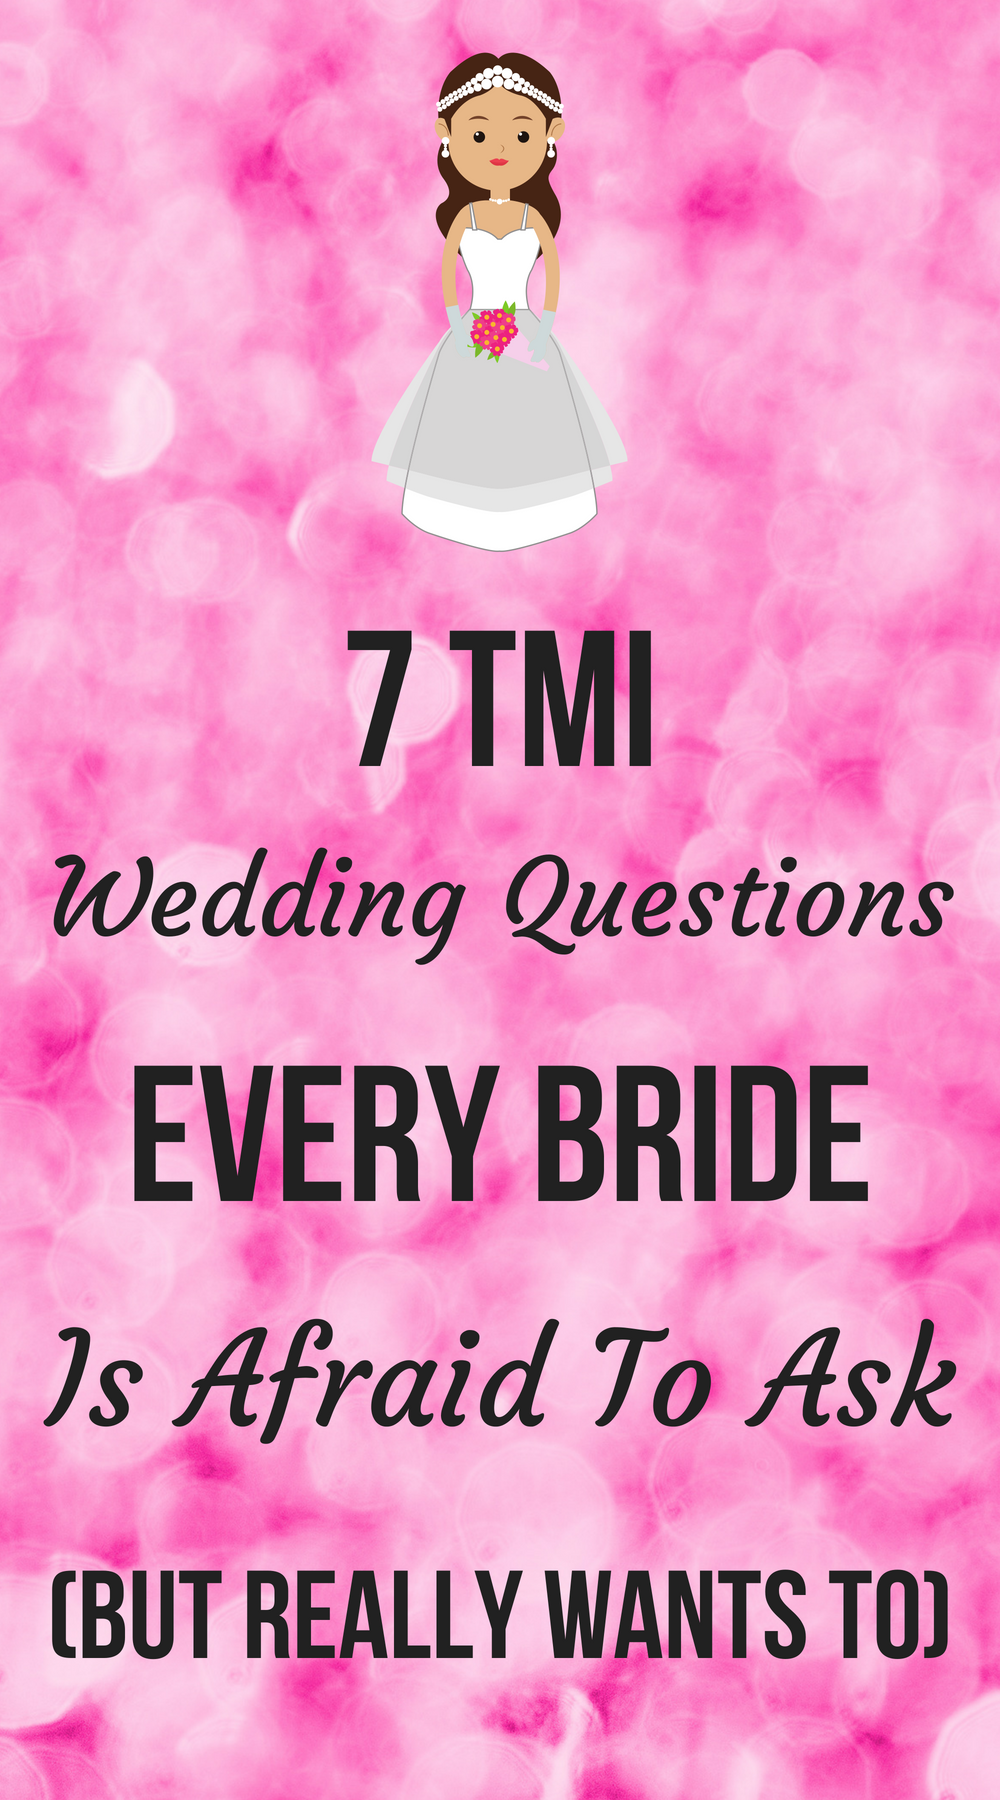 7 TMI Wedding Questions Every Bride Is Afraid To Ask (But Really Wants To)!…